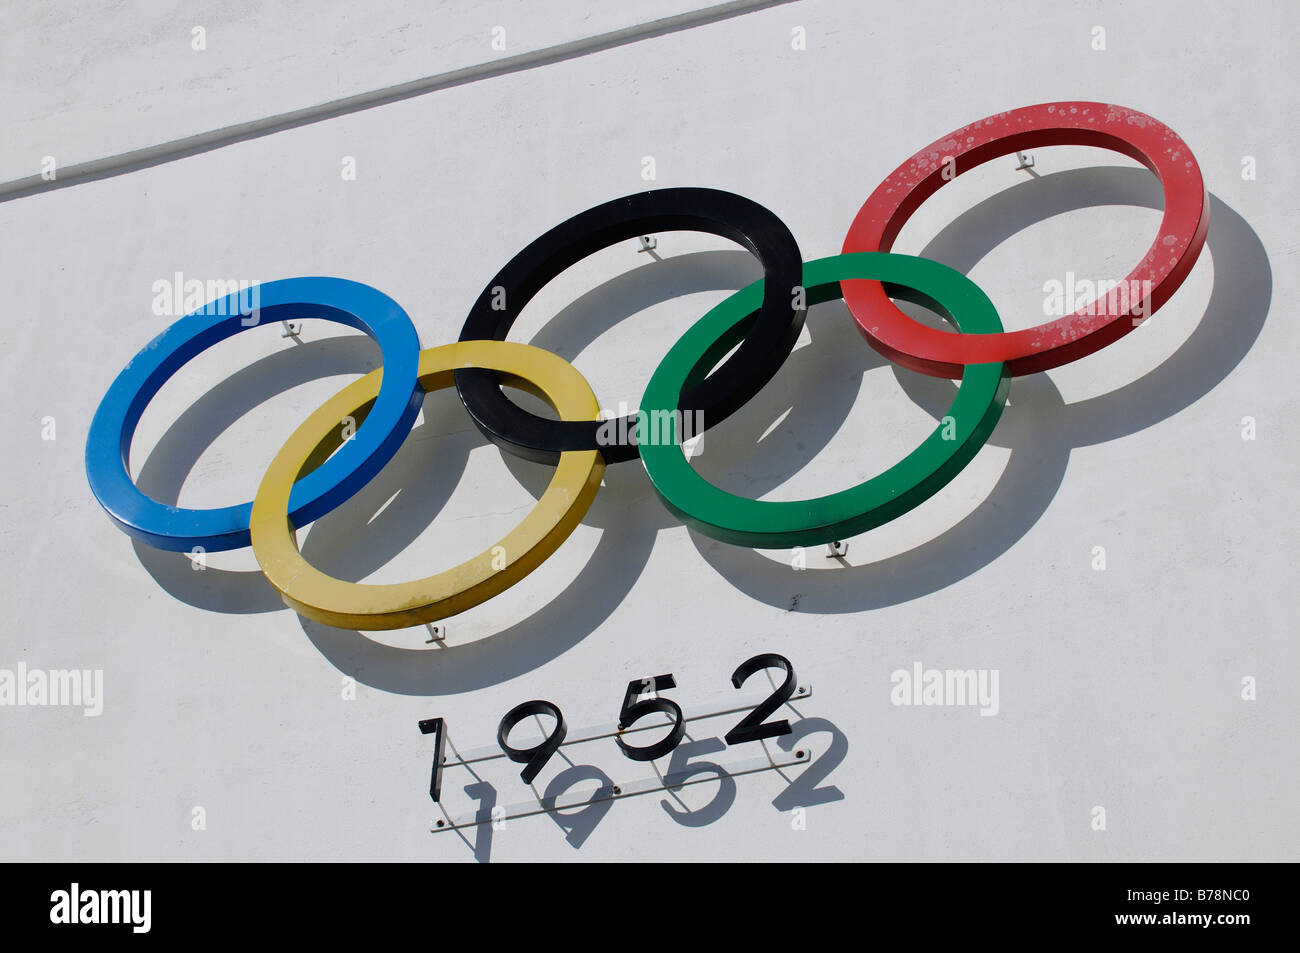 Olympic rings, 1952, Olympic stadium, Helsinki, Finland, Europe - Stock Image